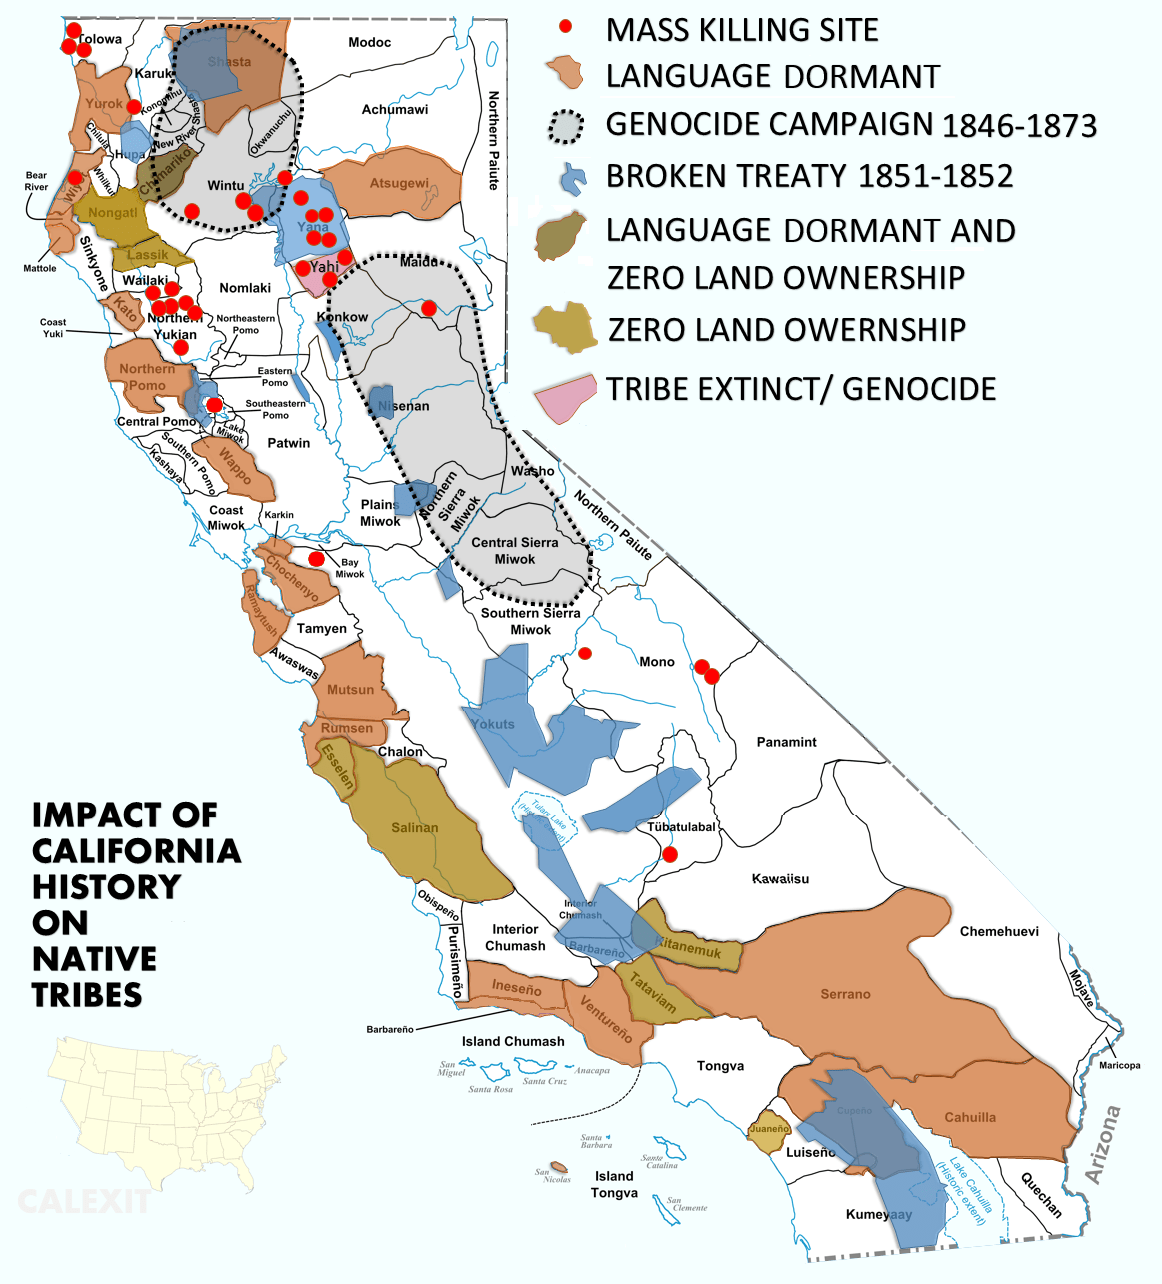 The Collective Impact Of California History On Native